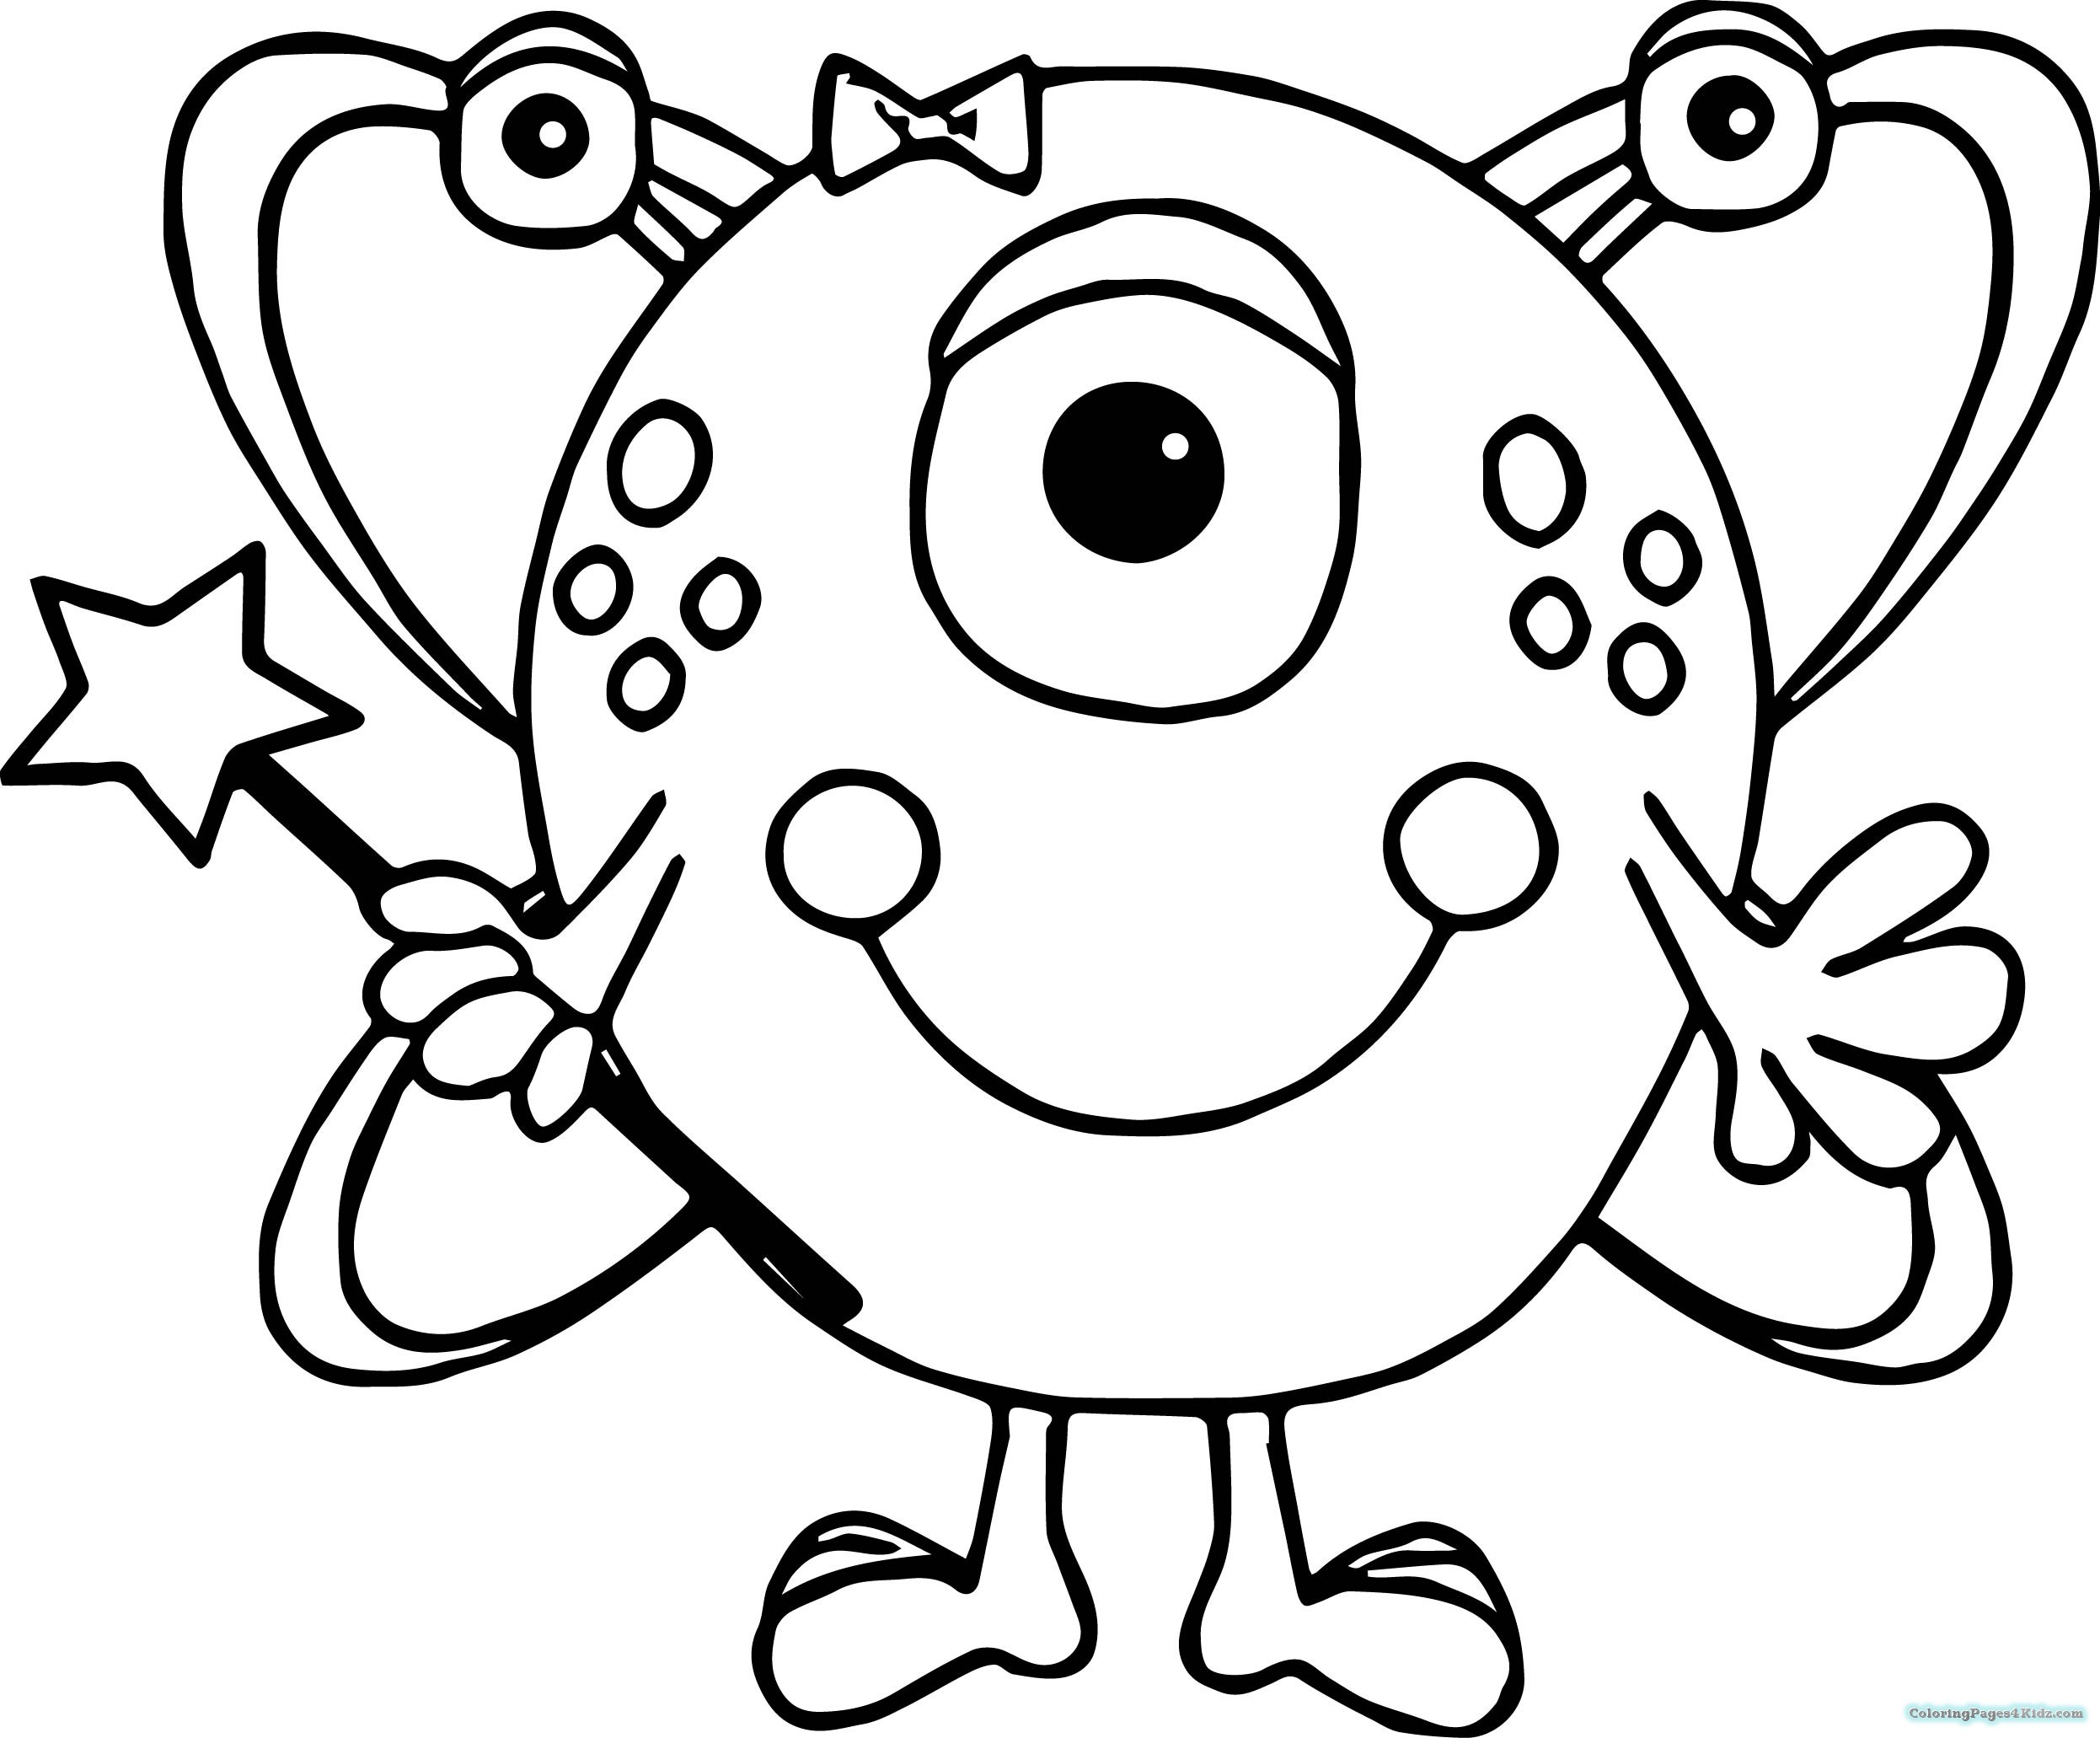 printable alien pictures alien at earth coloring pages space coloring pages pictures printable alien